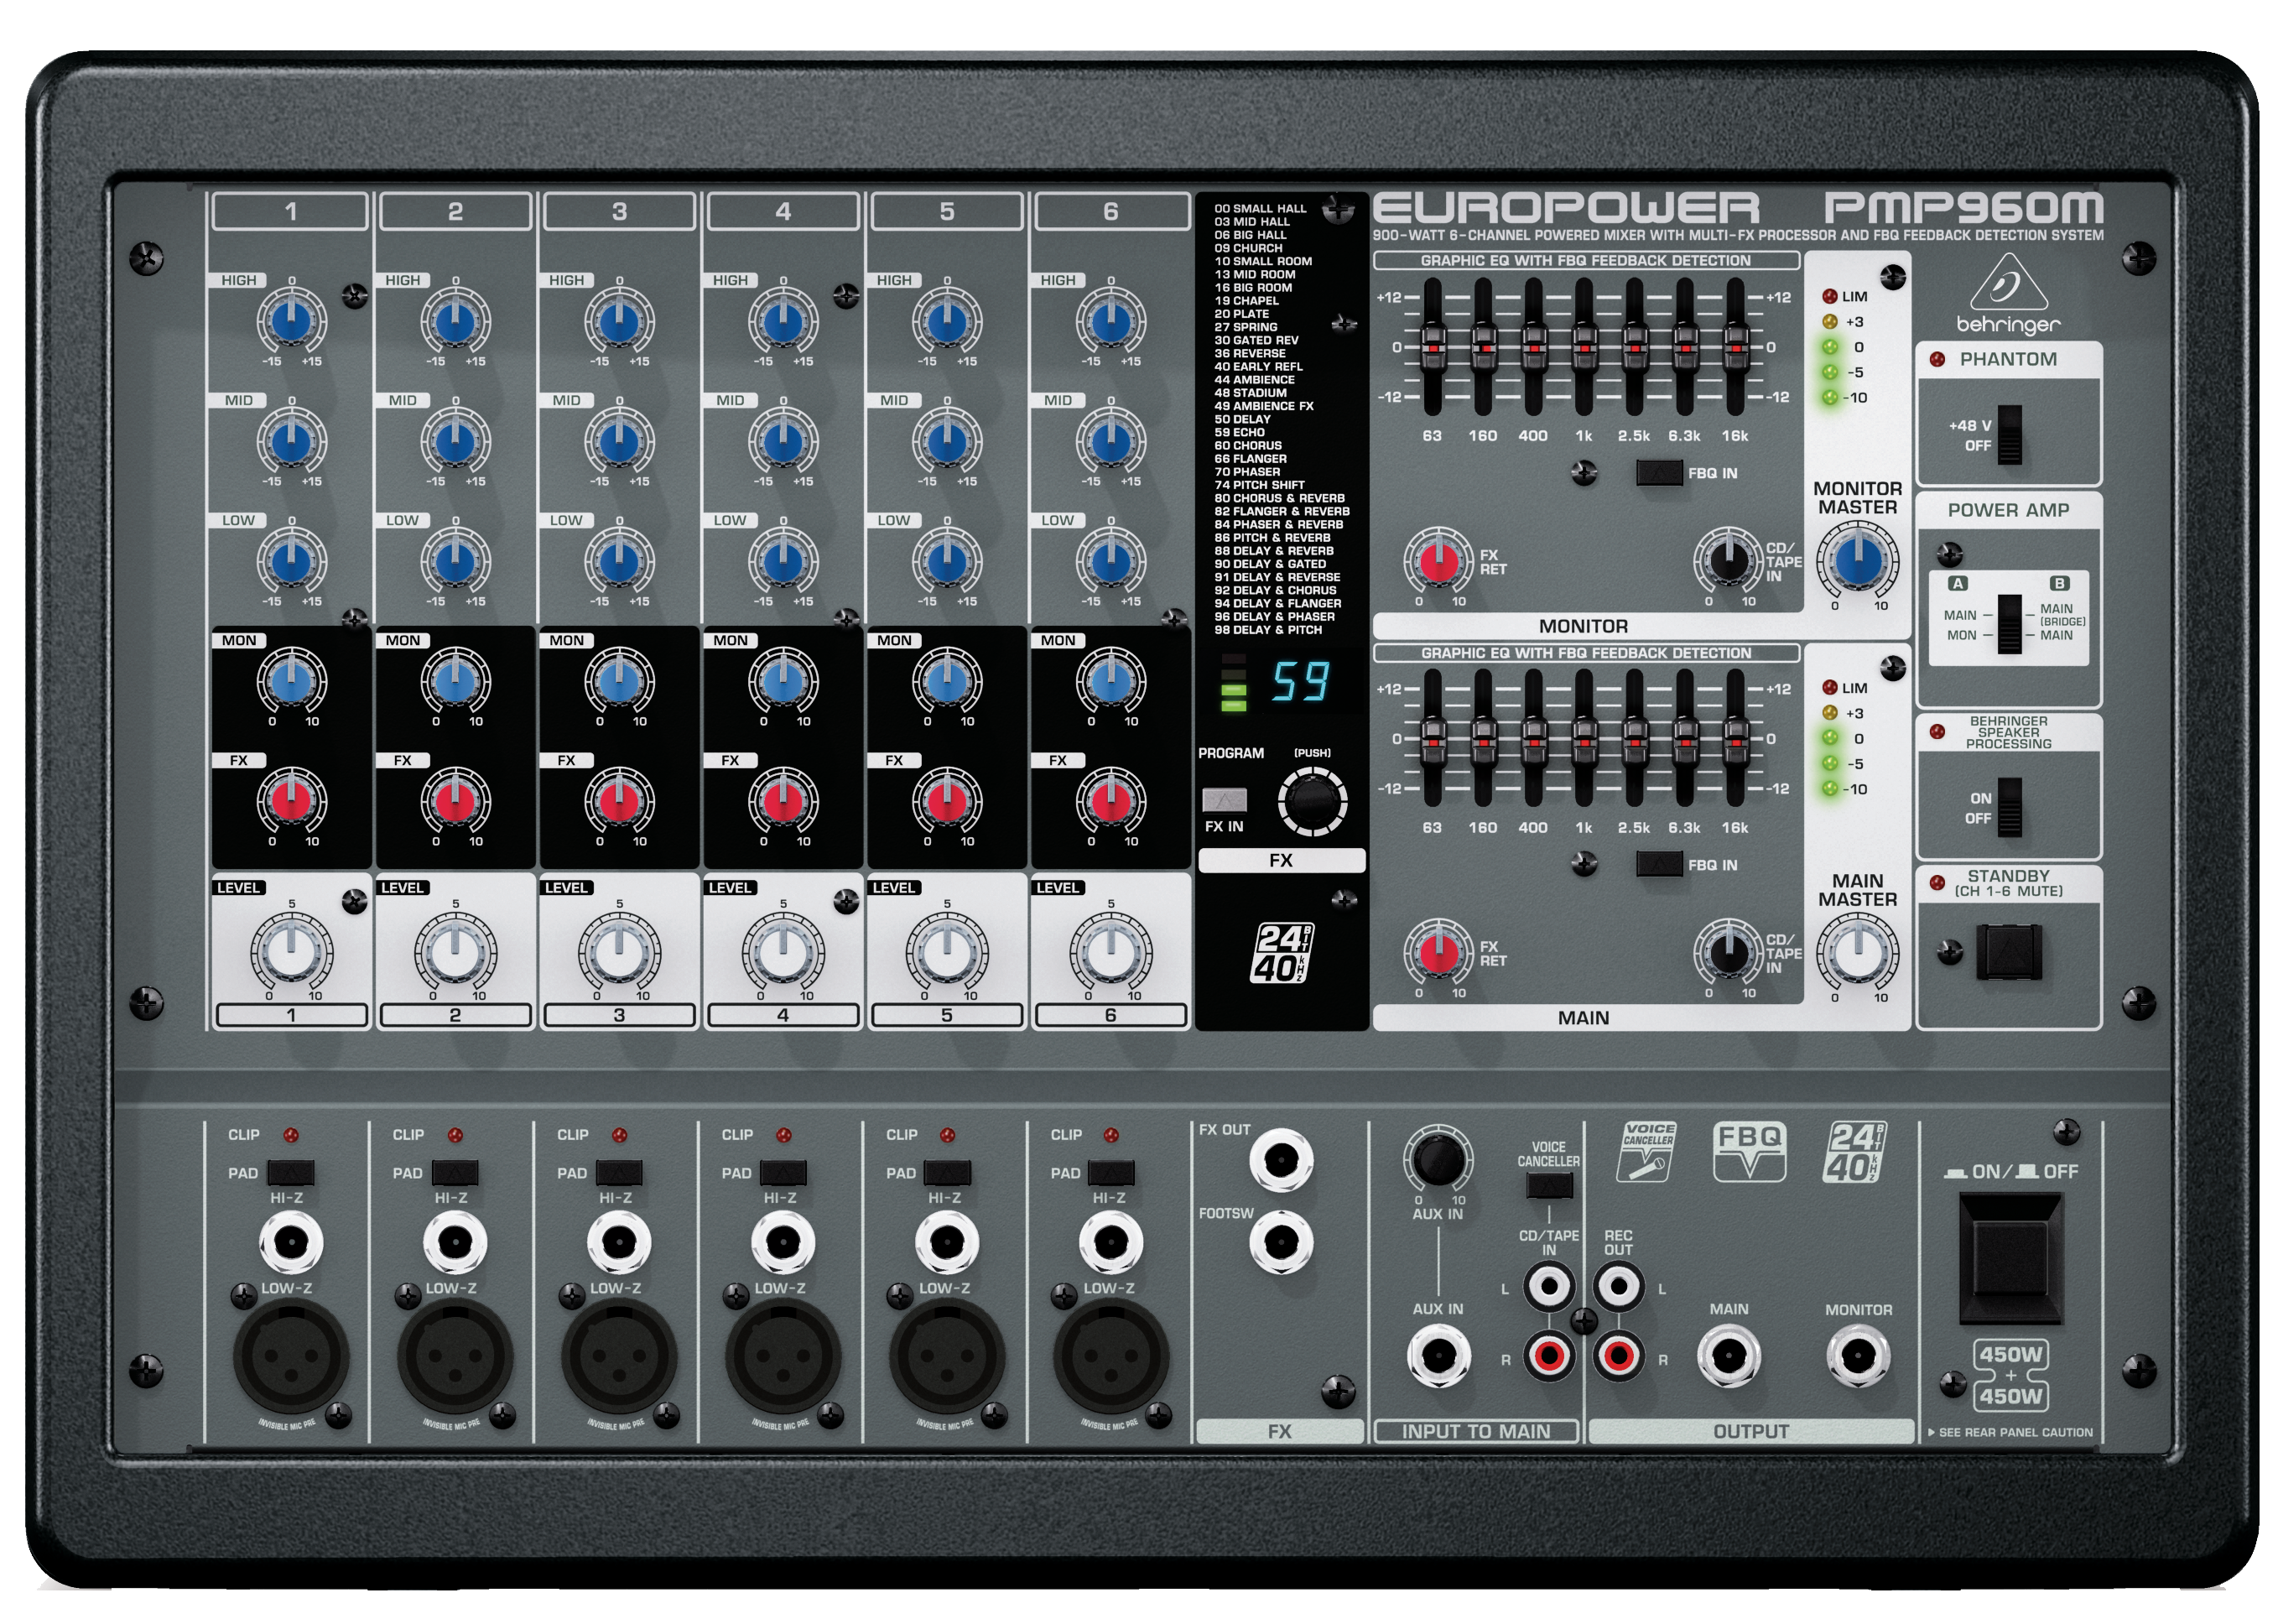 Behringer Pmp960m 900 Watt 6 Channel Powered Mixer With Multi Fx Audio Processor And Fbq Feedback Detection System